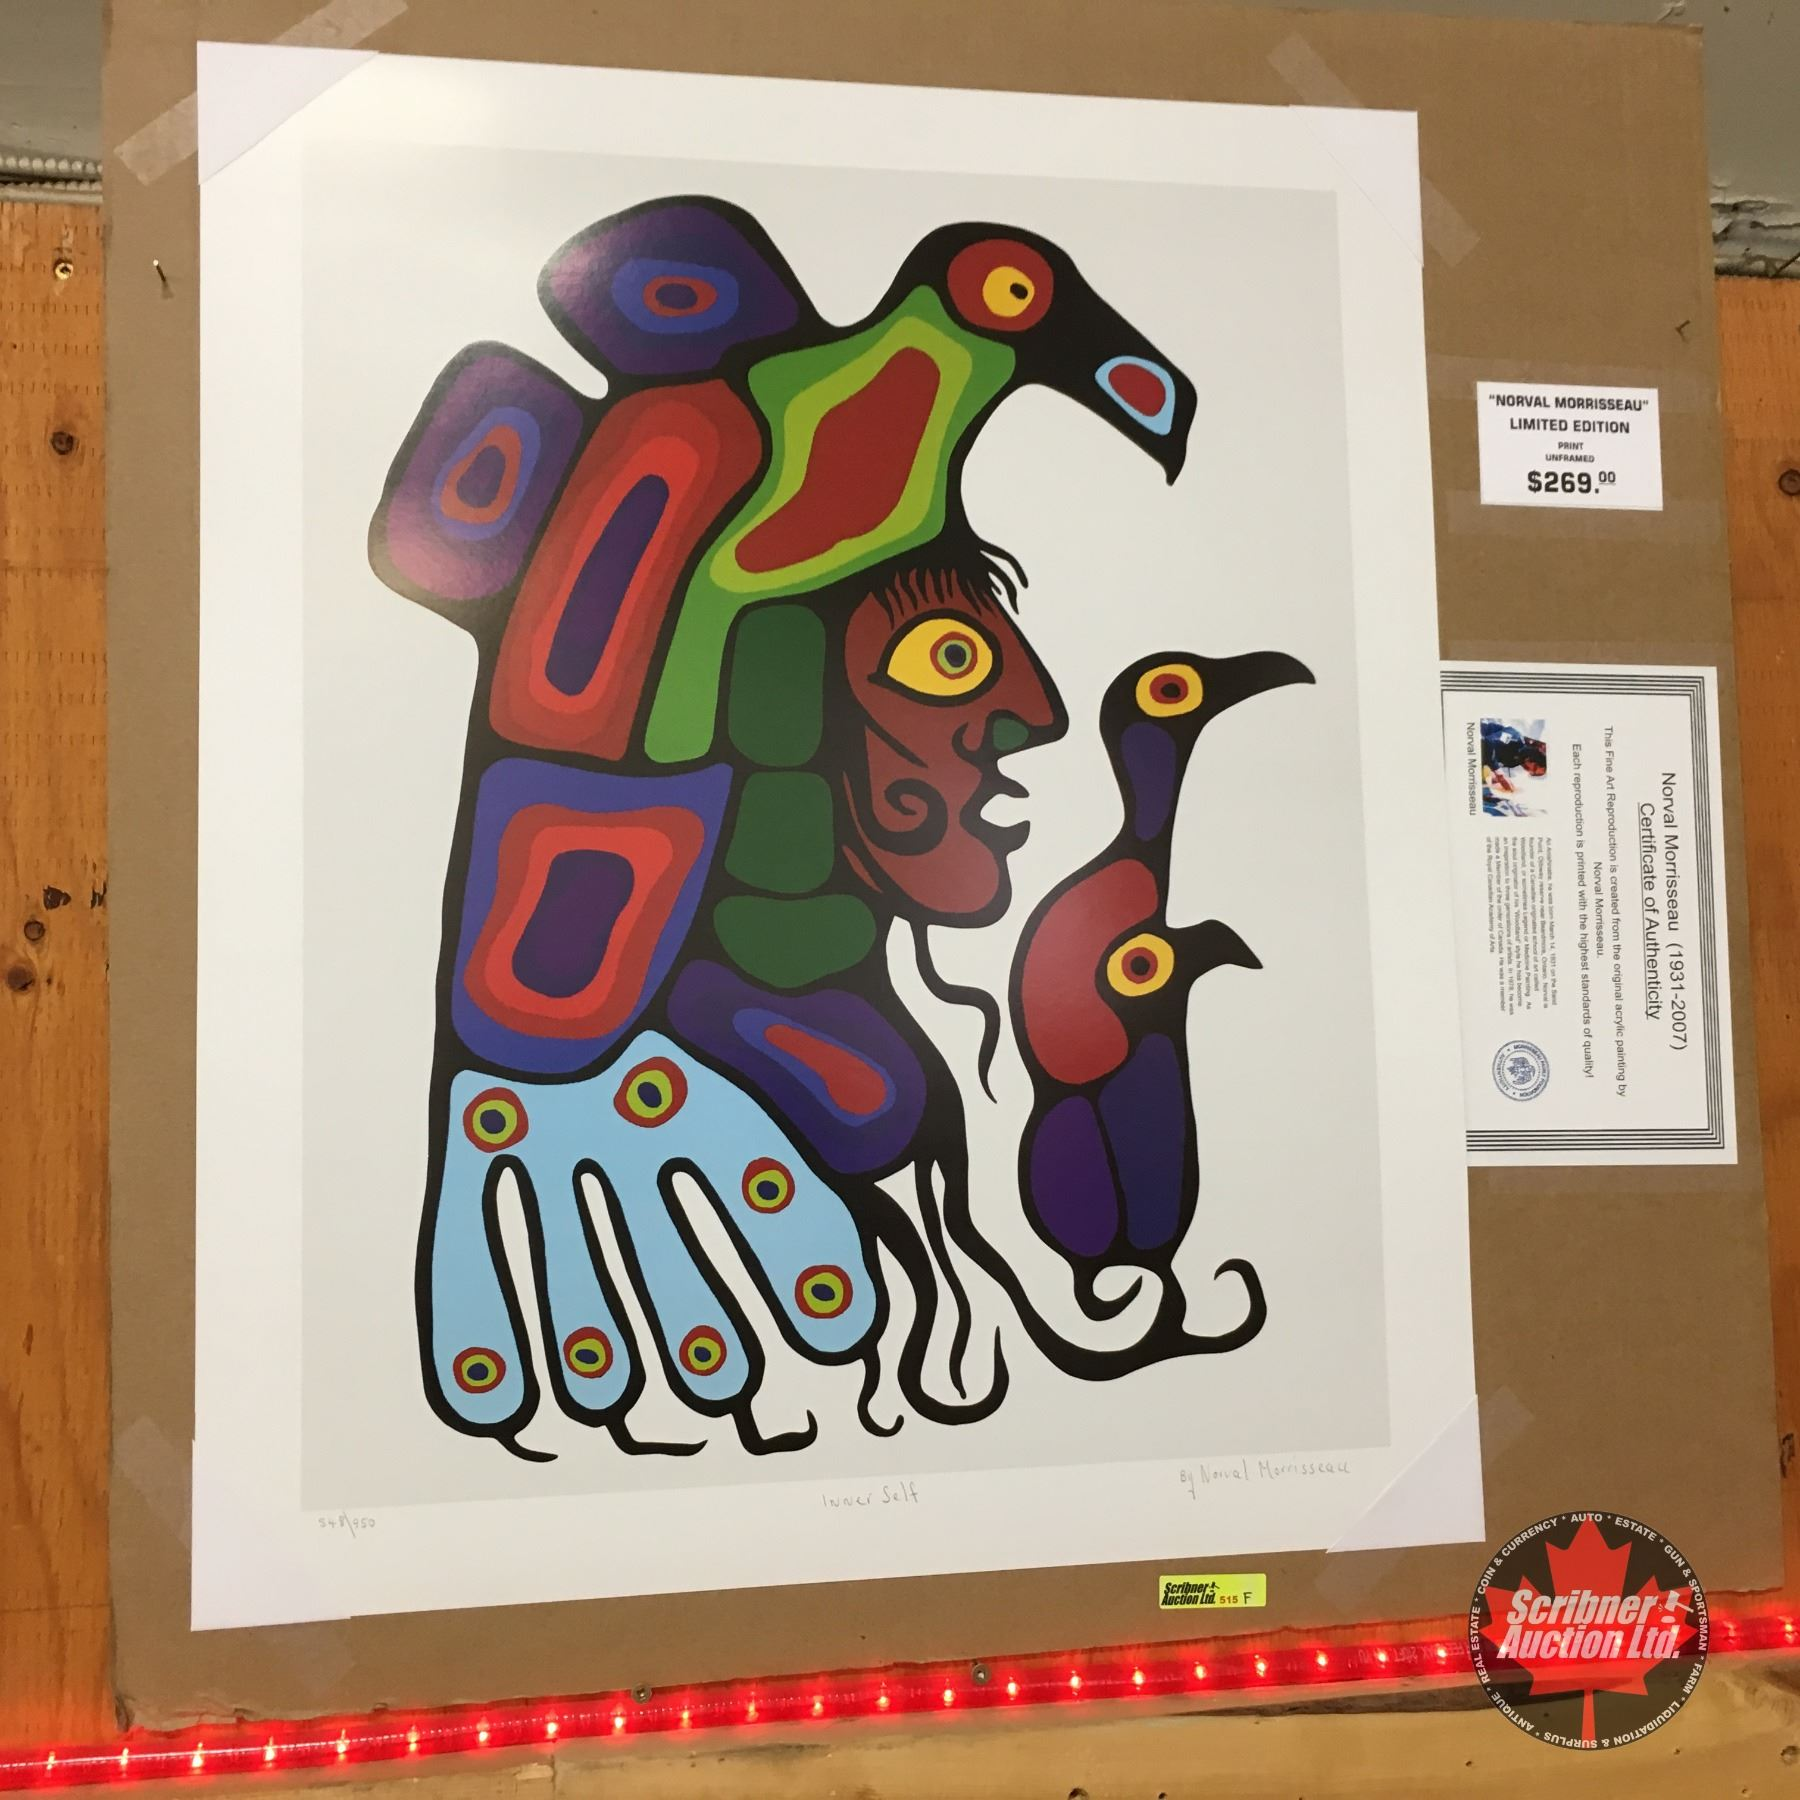 Limited Edition Prints - Artist : Norval Morrisseau